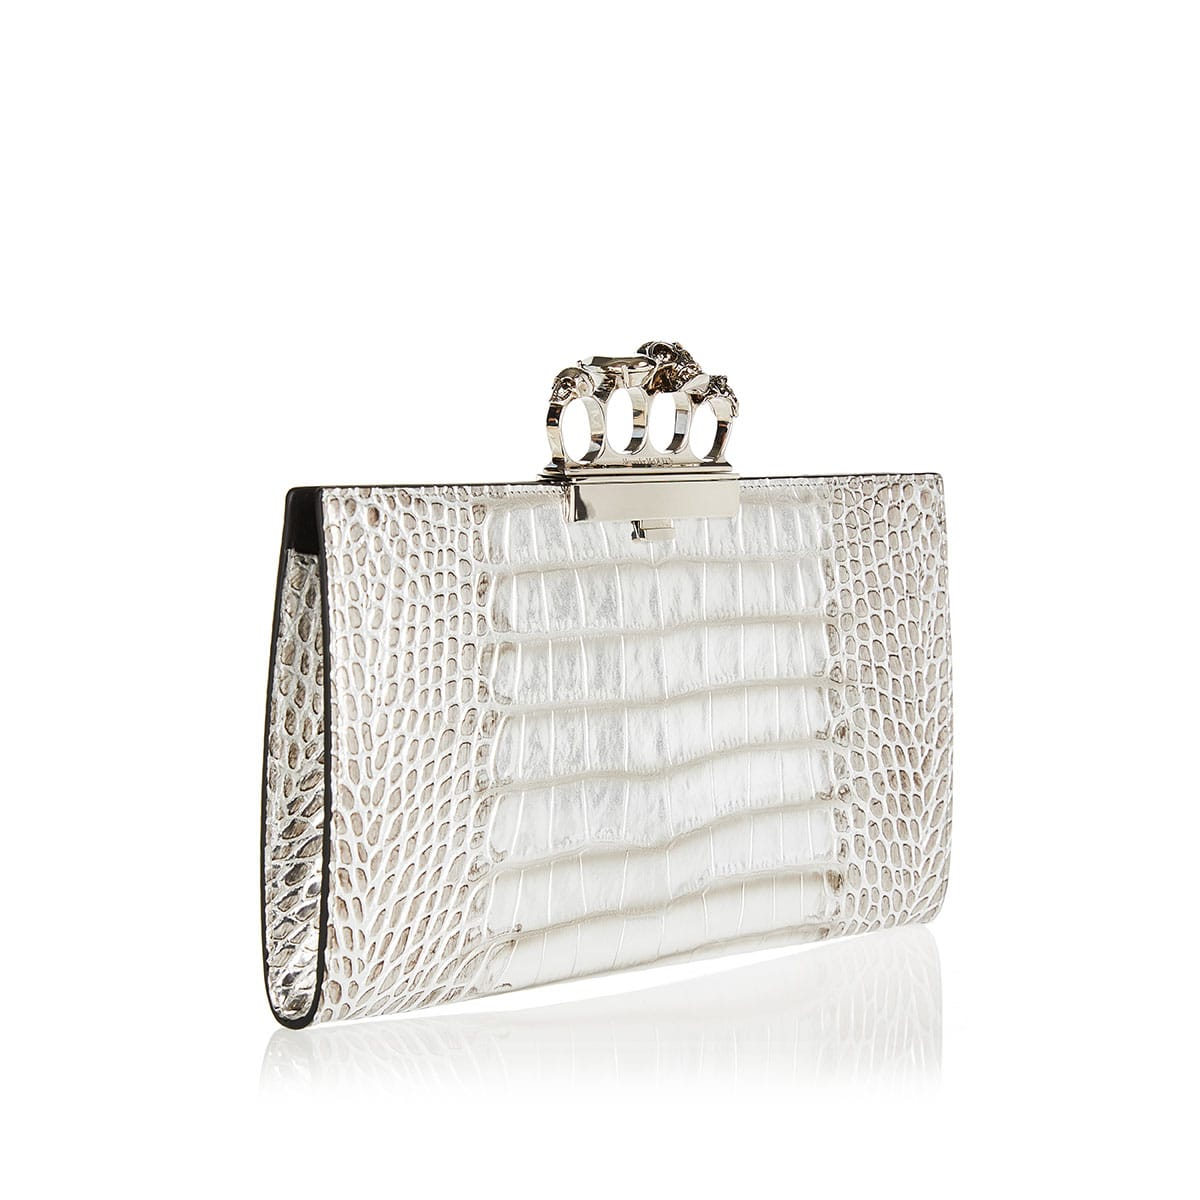 Four ring croc-effect metallic clutch